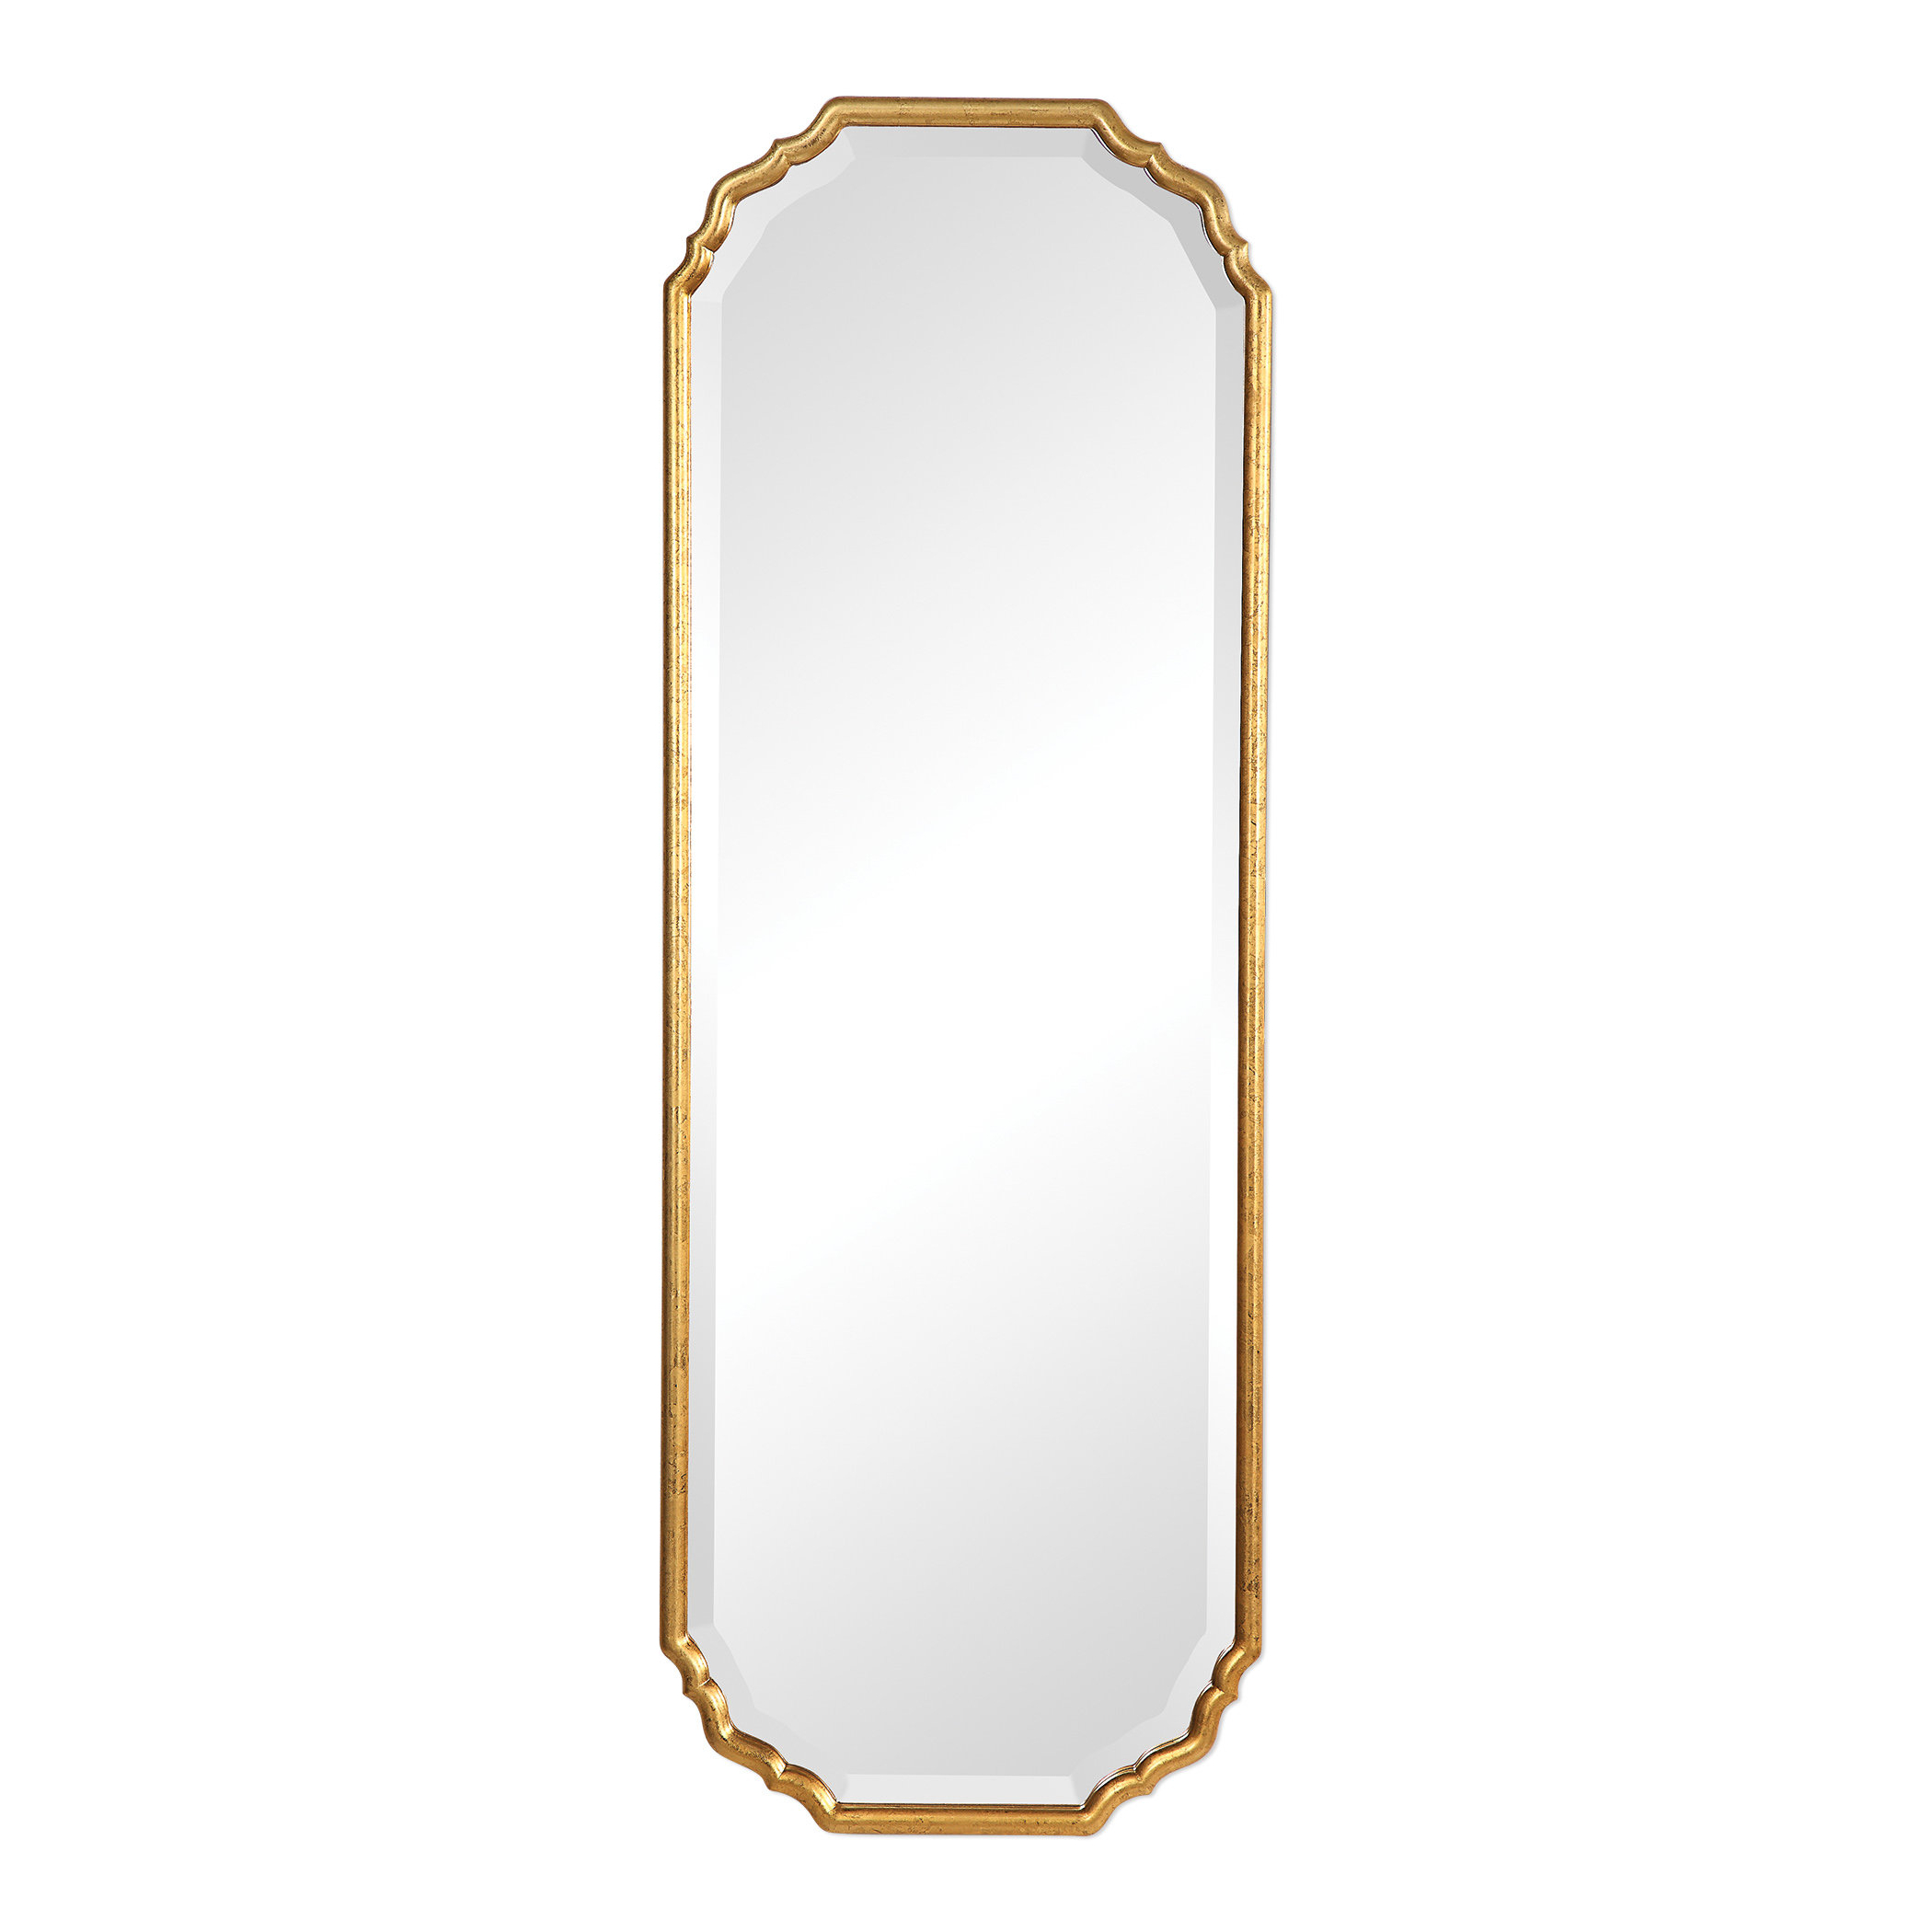 Christiano Traditional Full Length Wall Mirror Intended For Favorite Full Length Wall Mirrors (View 4 of 20)